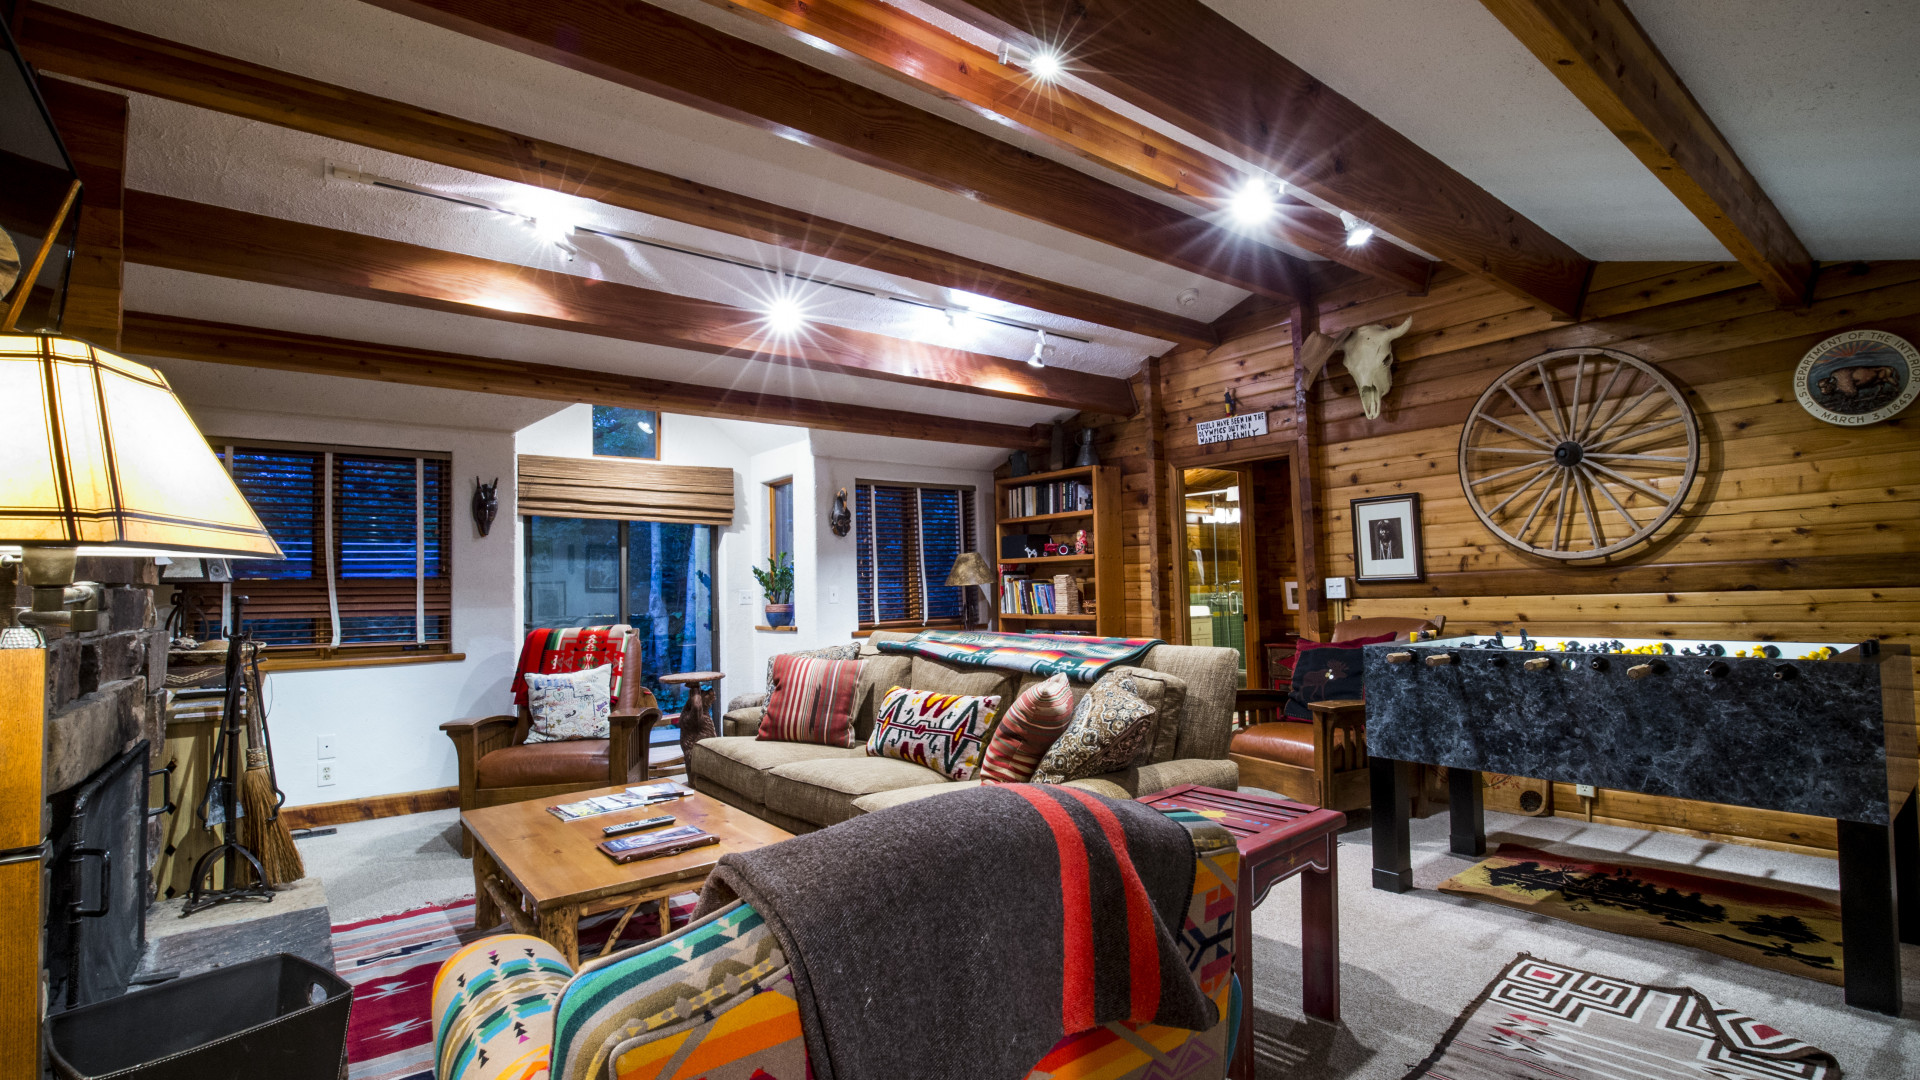 Interiors at Sundance Mountain Resort, Utah